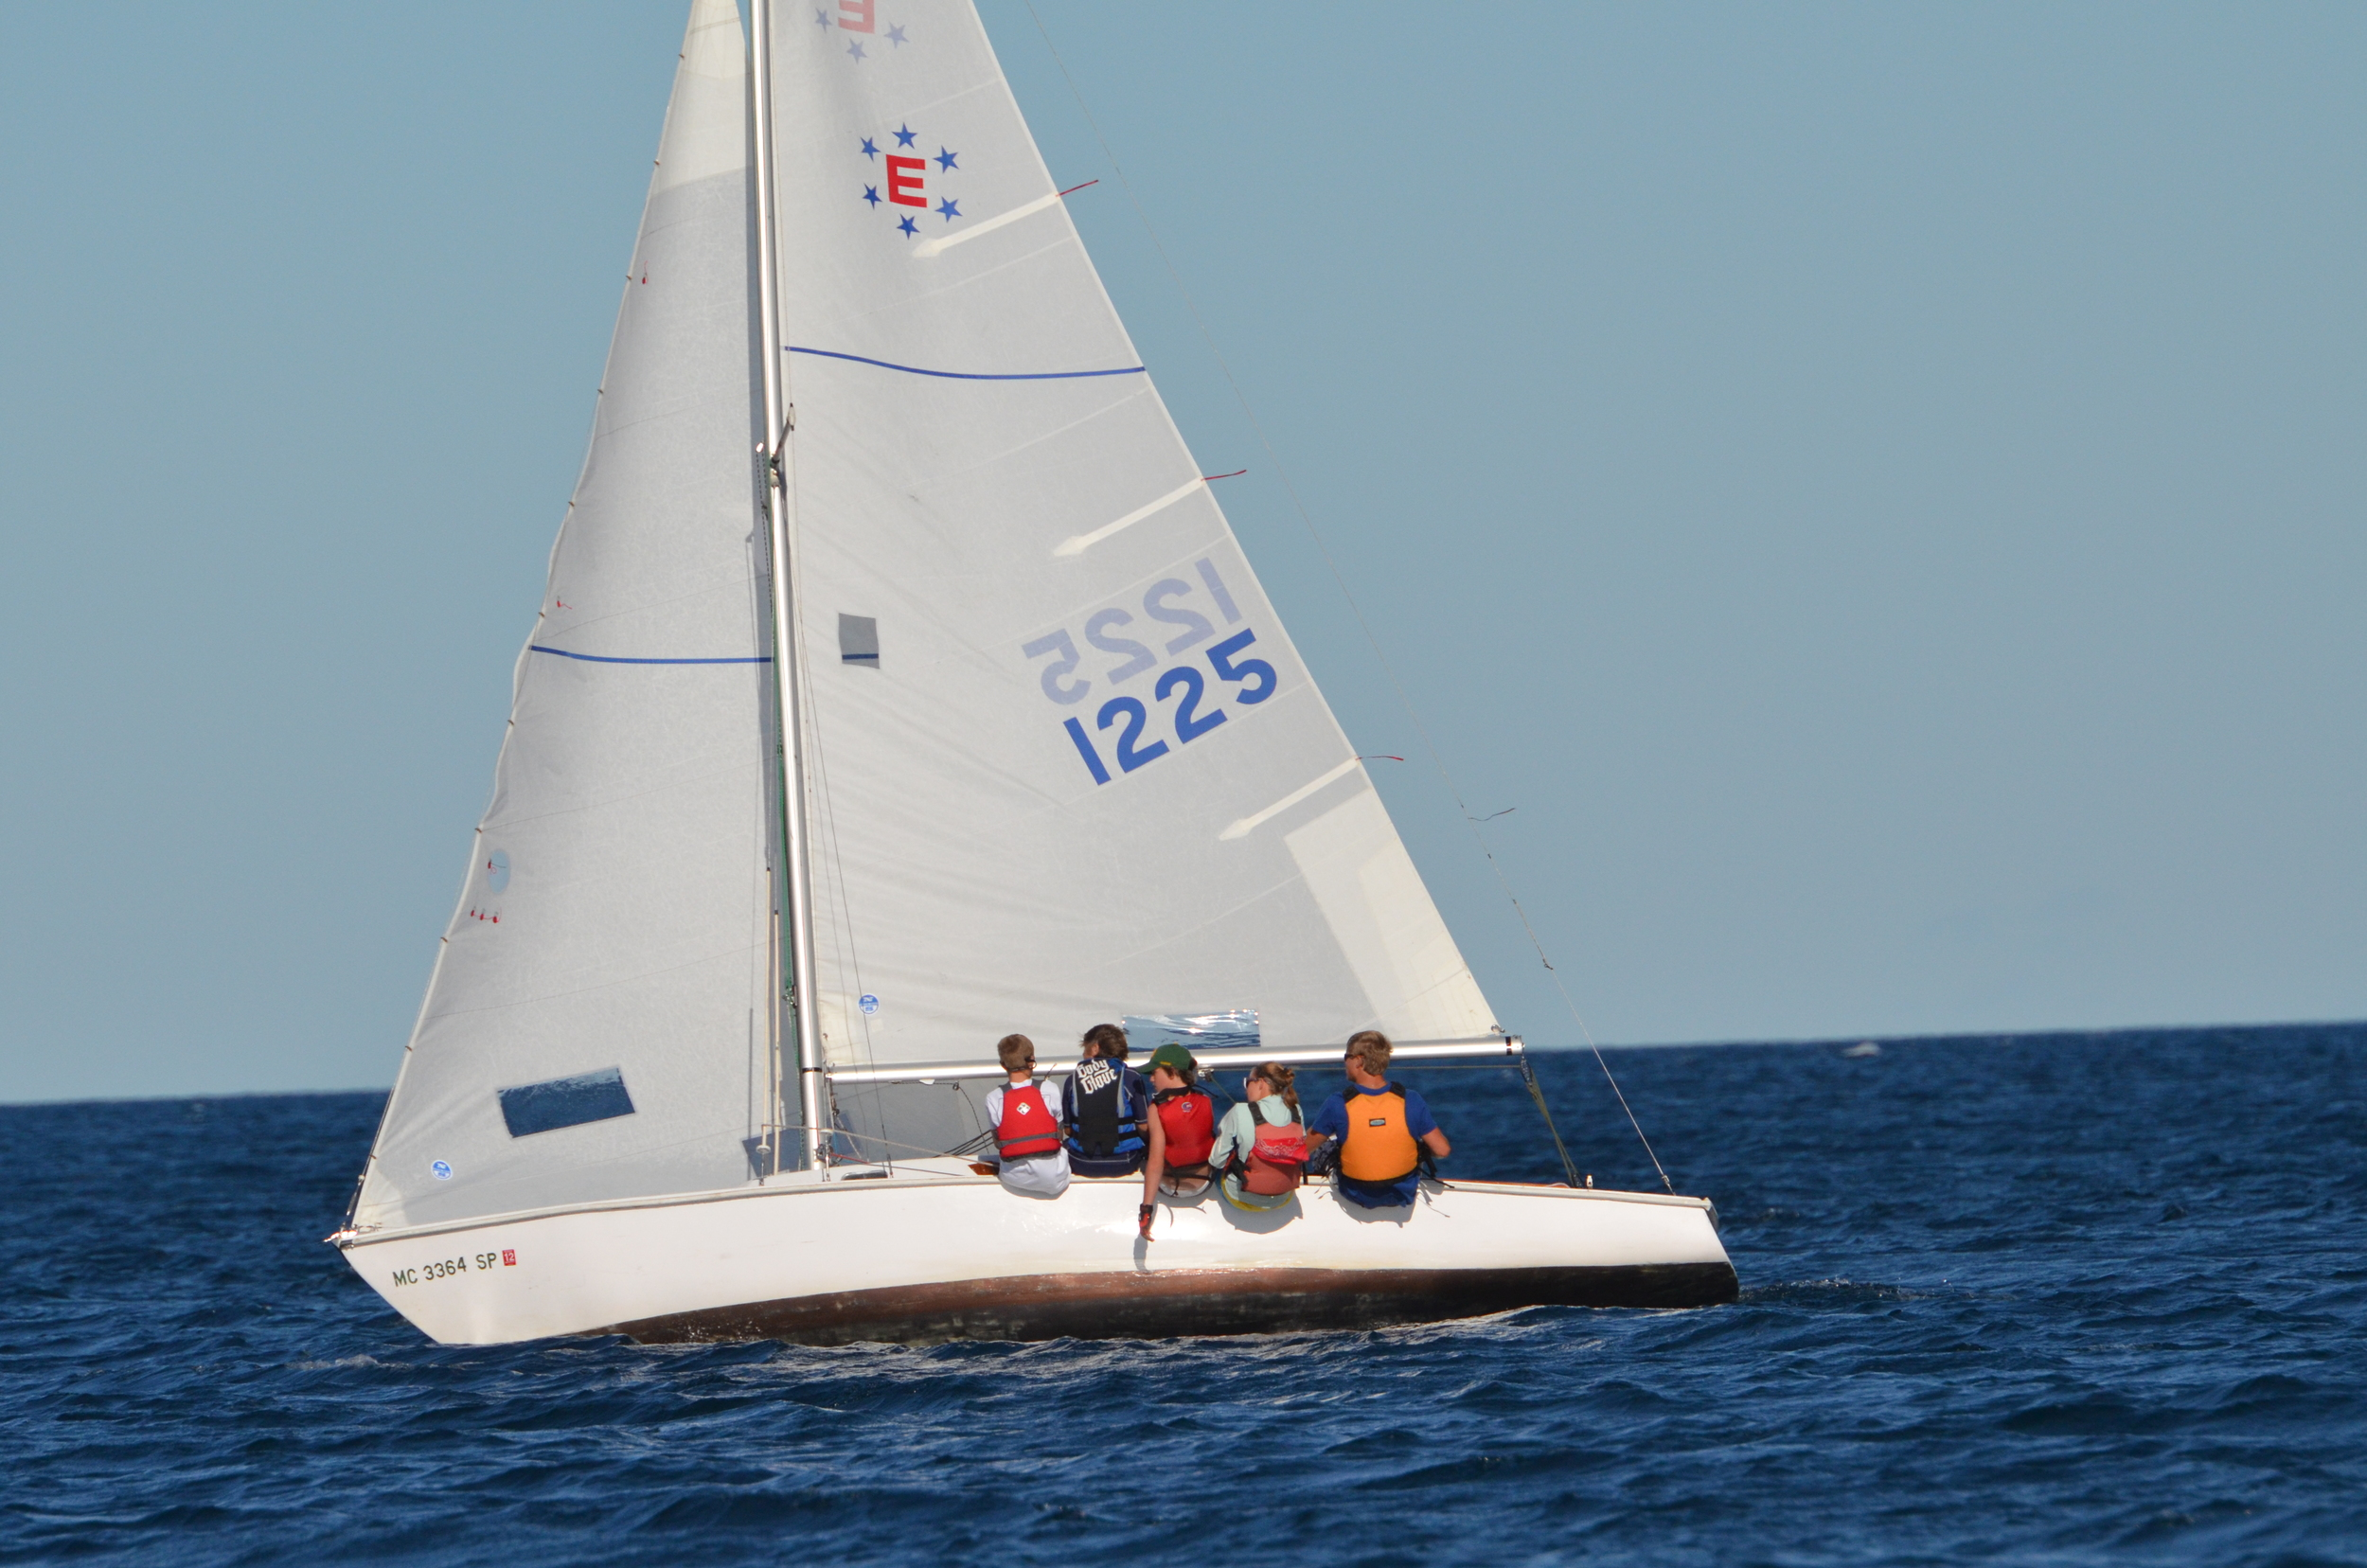 A youth team out racing in an Ensign.